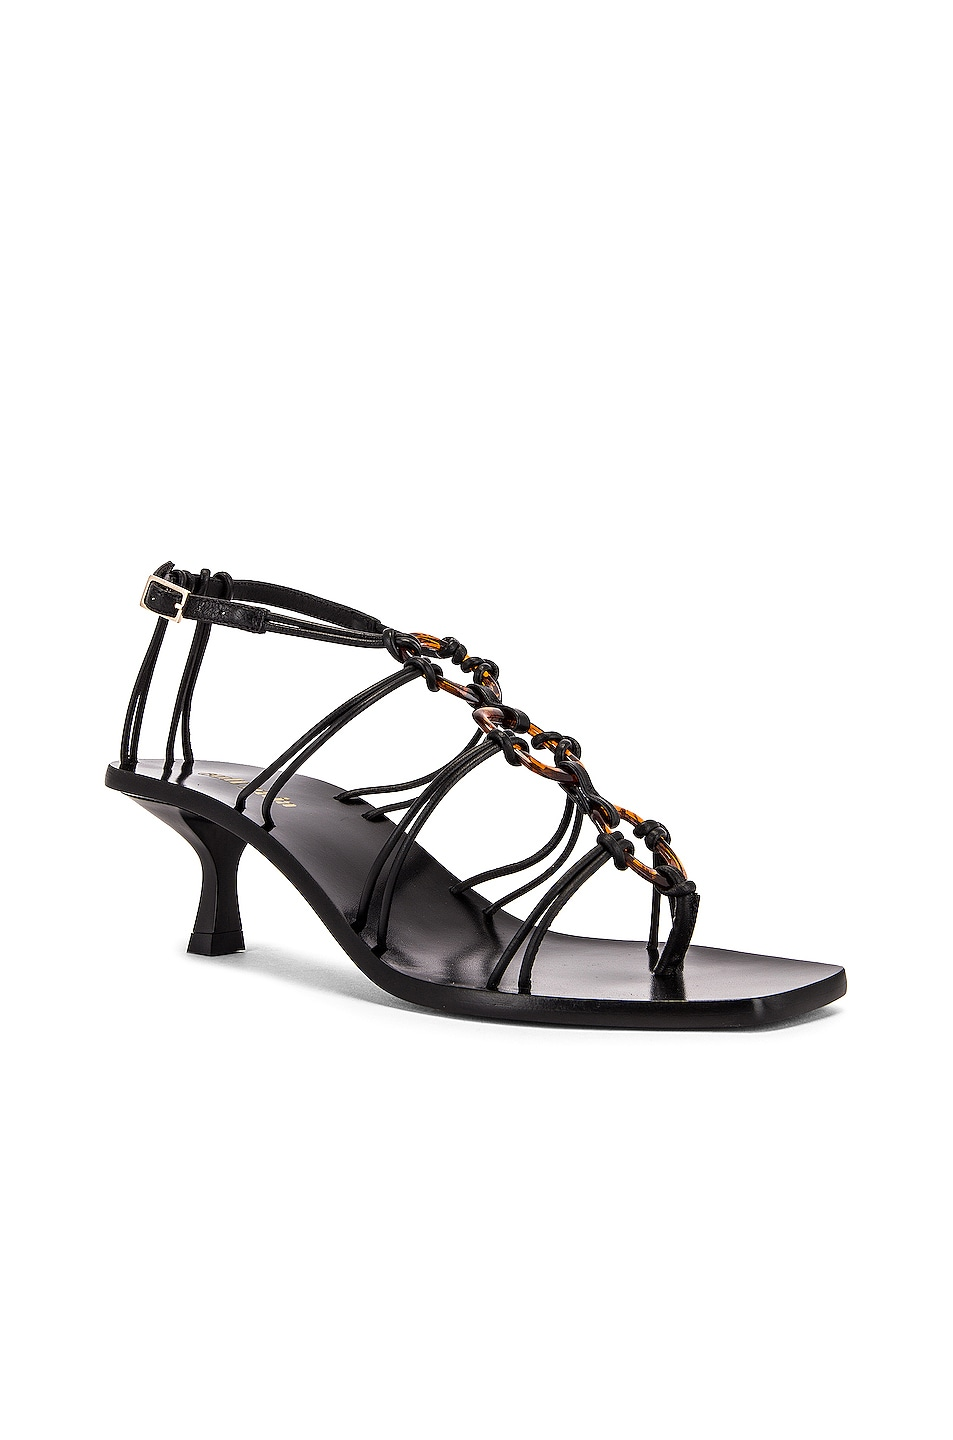 Image 2 of Cult Gaia Ziba Sandal in Black